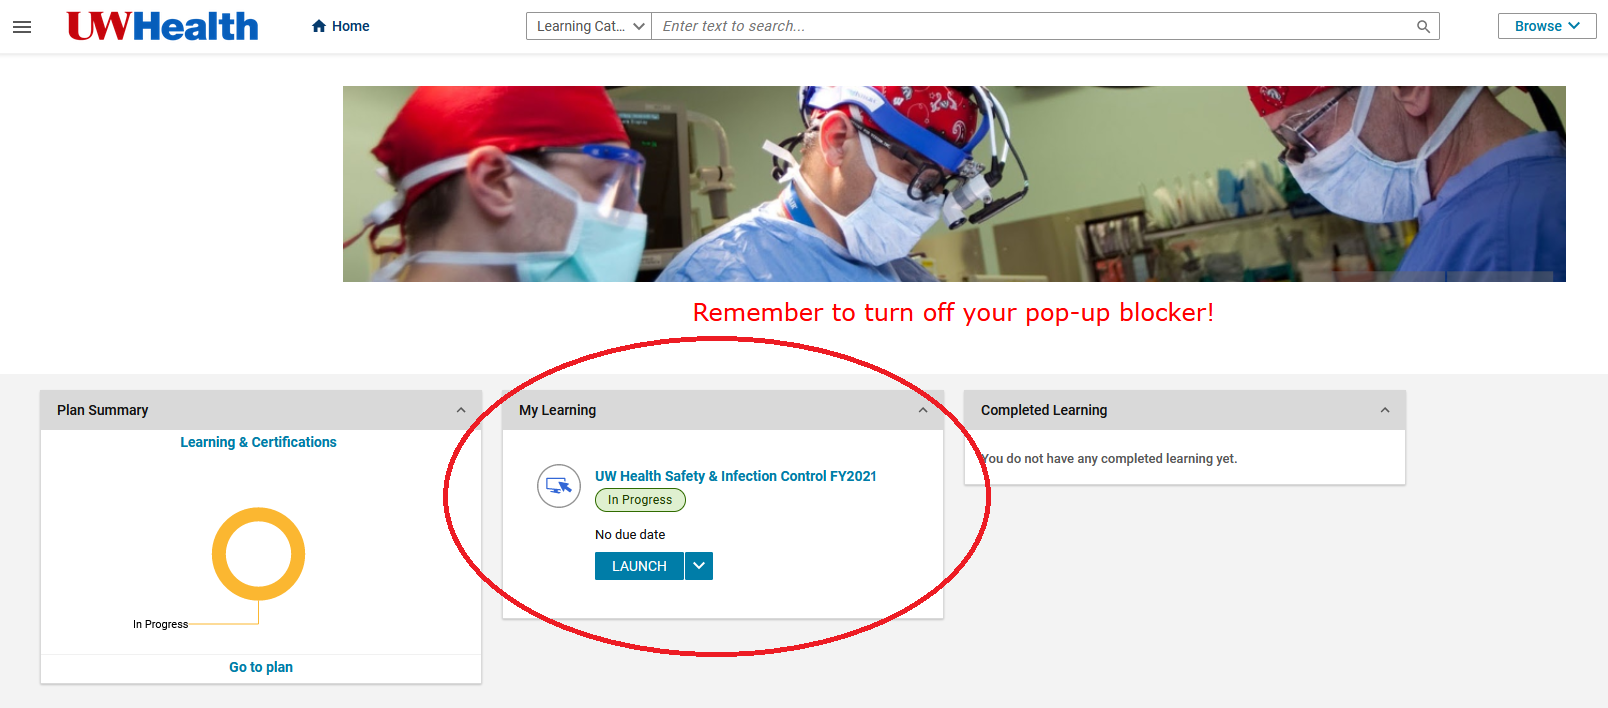 Learn@UWHealth Dashboard showing Safety and Infection Control course in My Learning tile